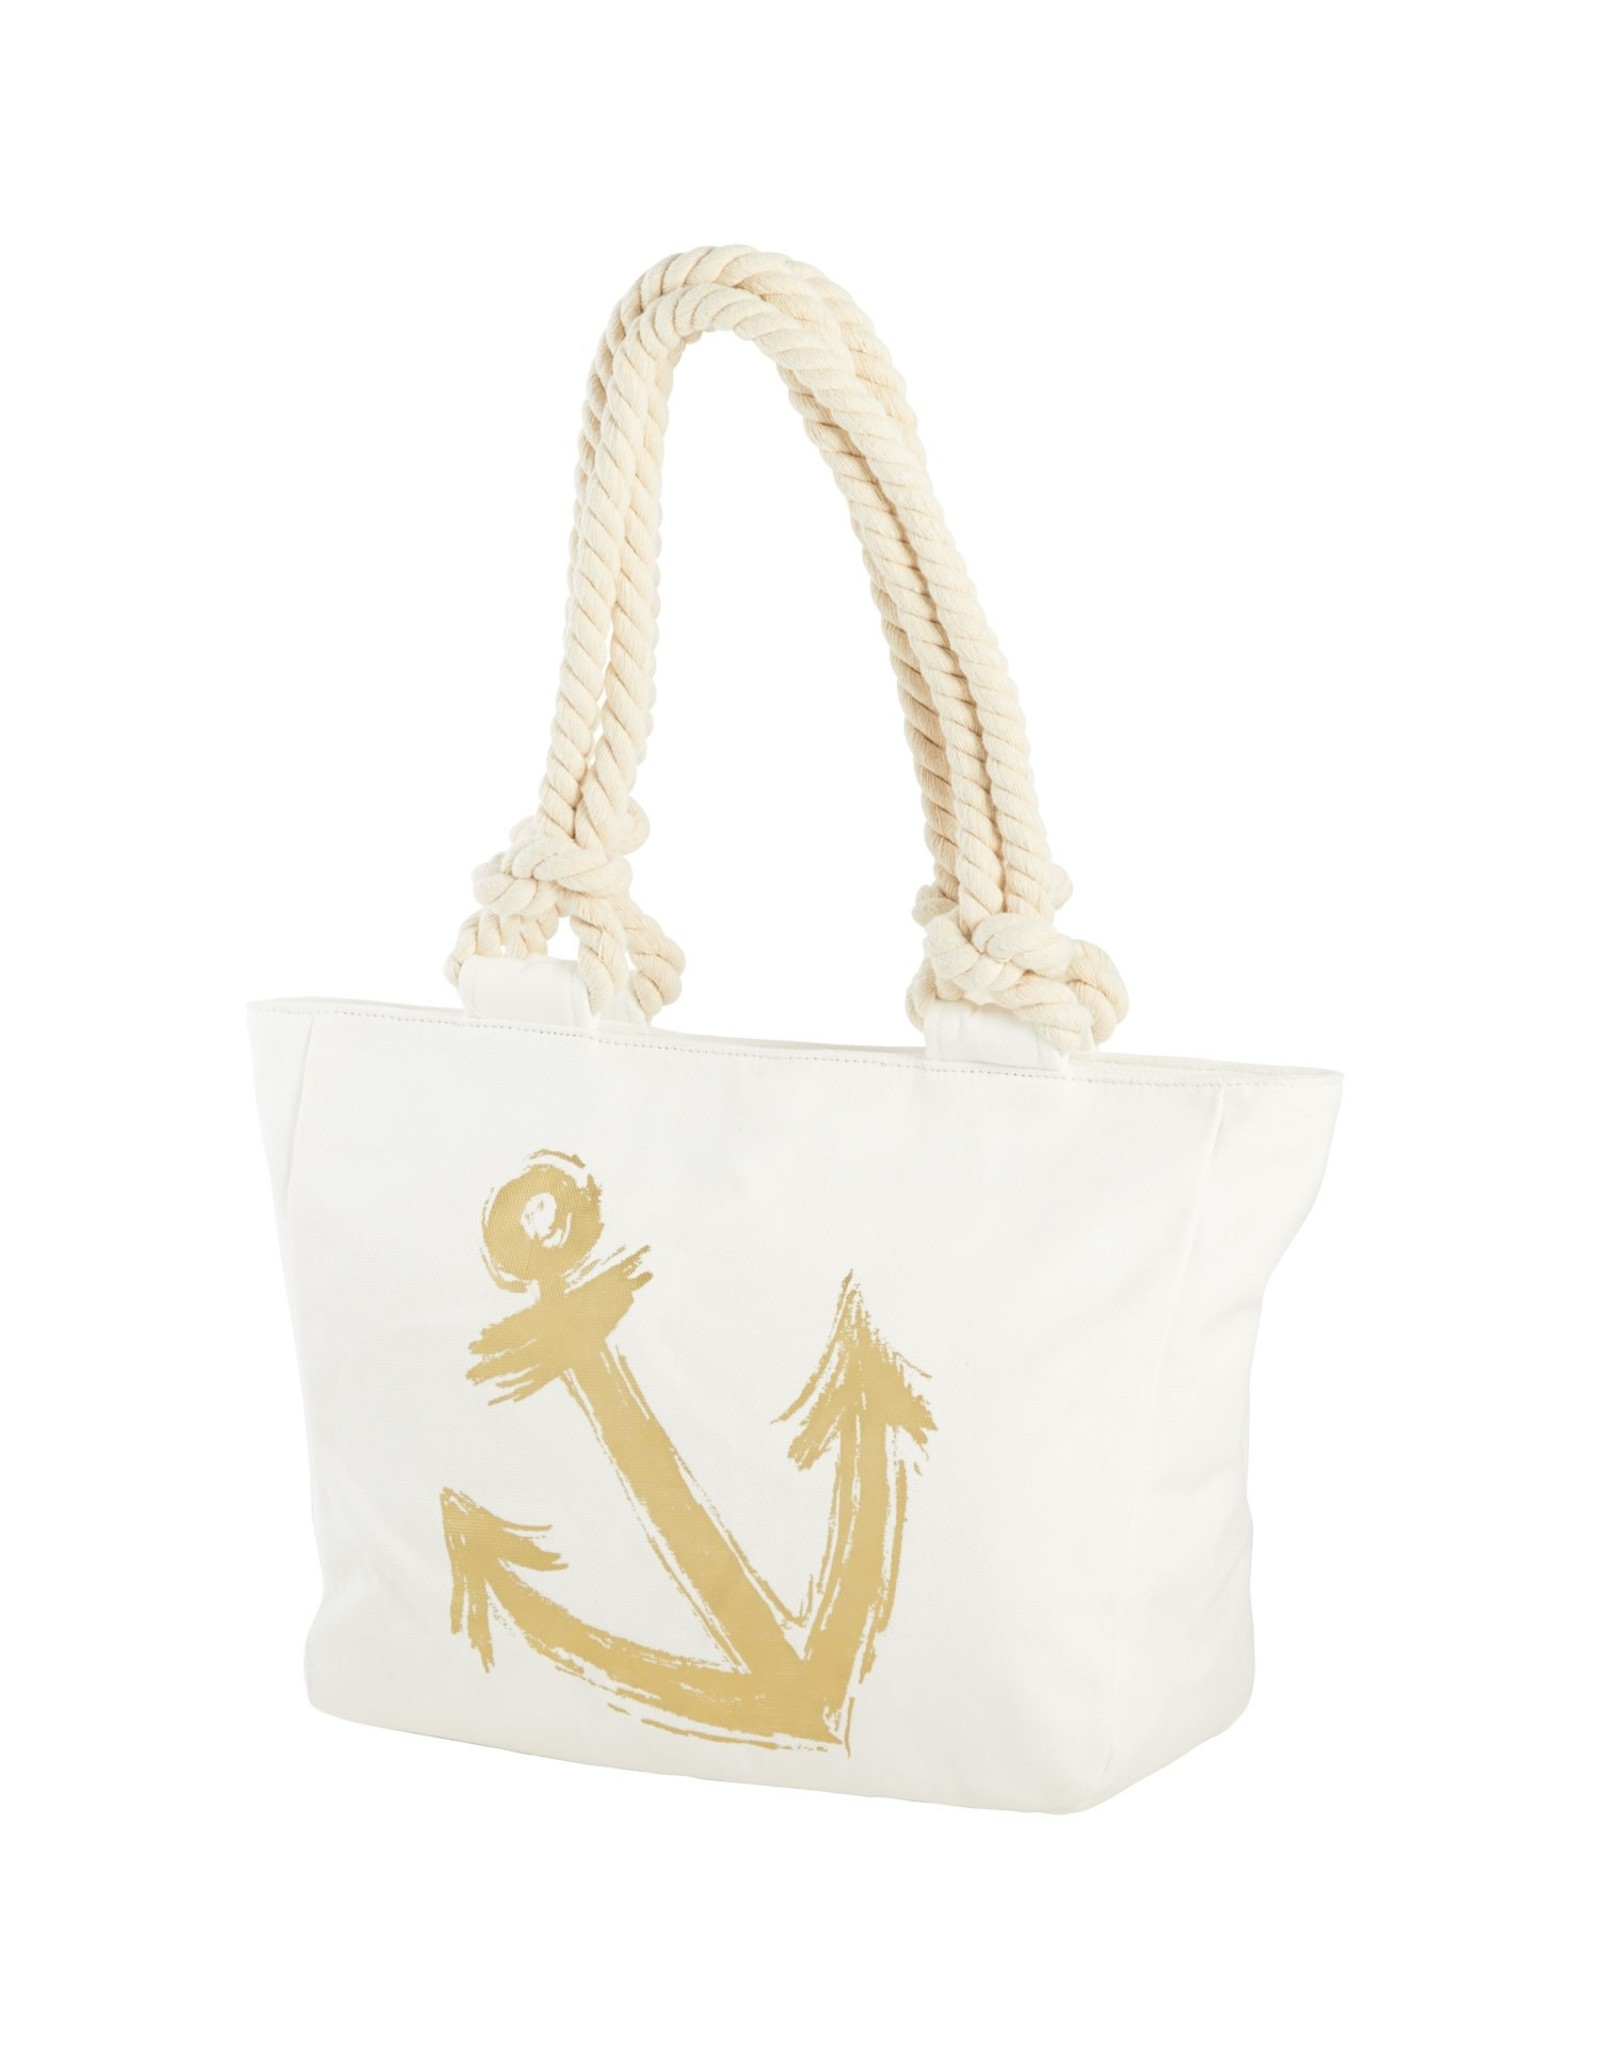 Beachcombers Tote- Gold Anchor